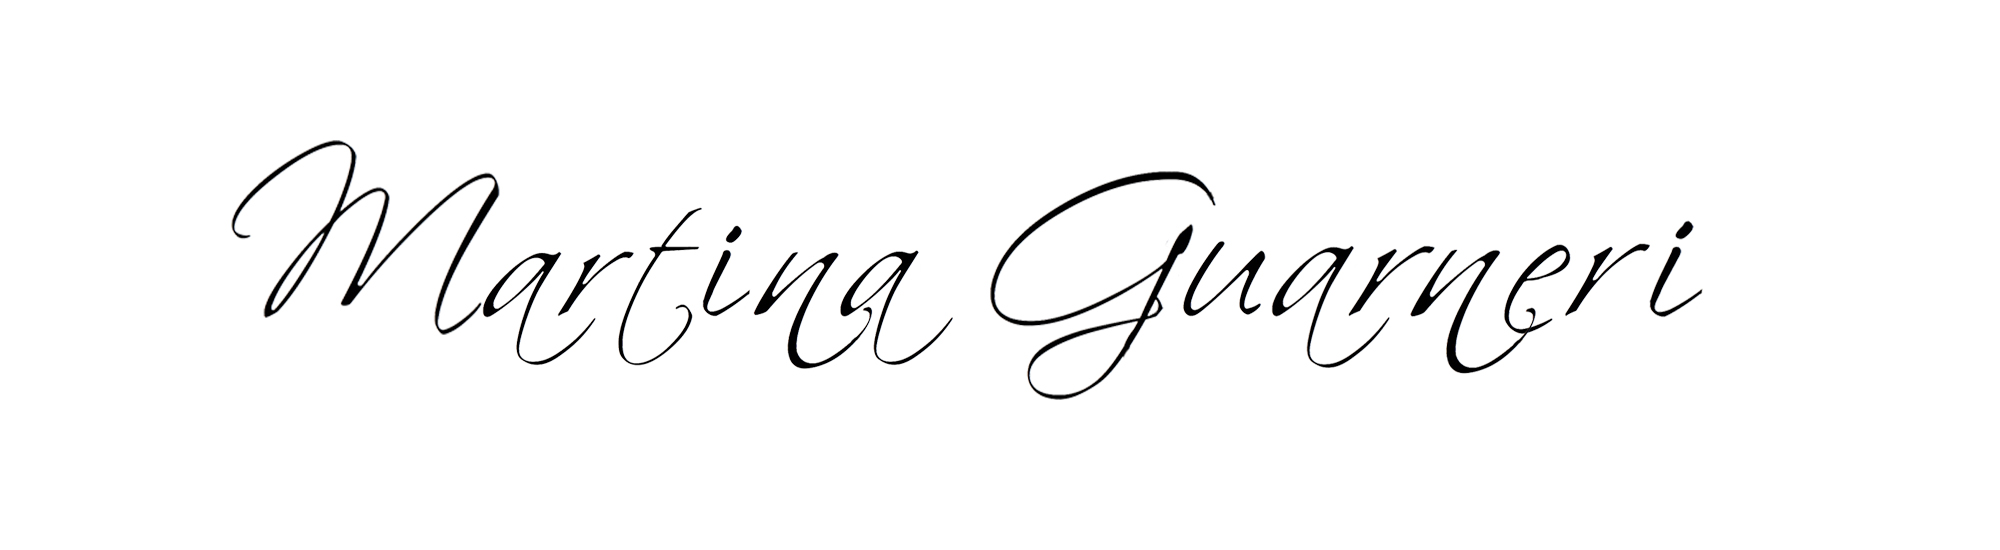 Martina Guarneri Logo